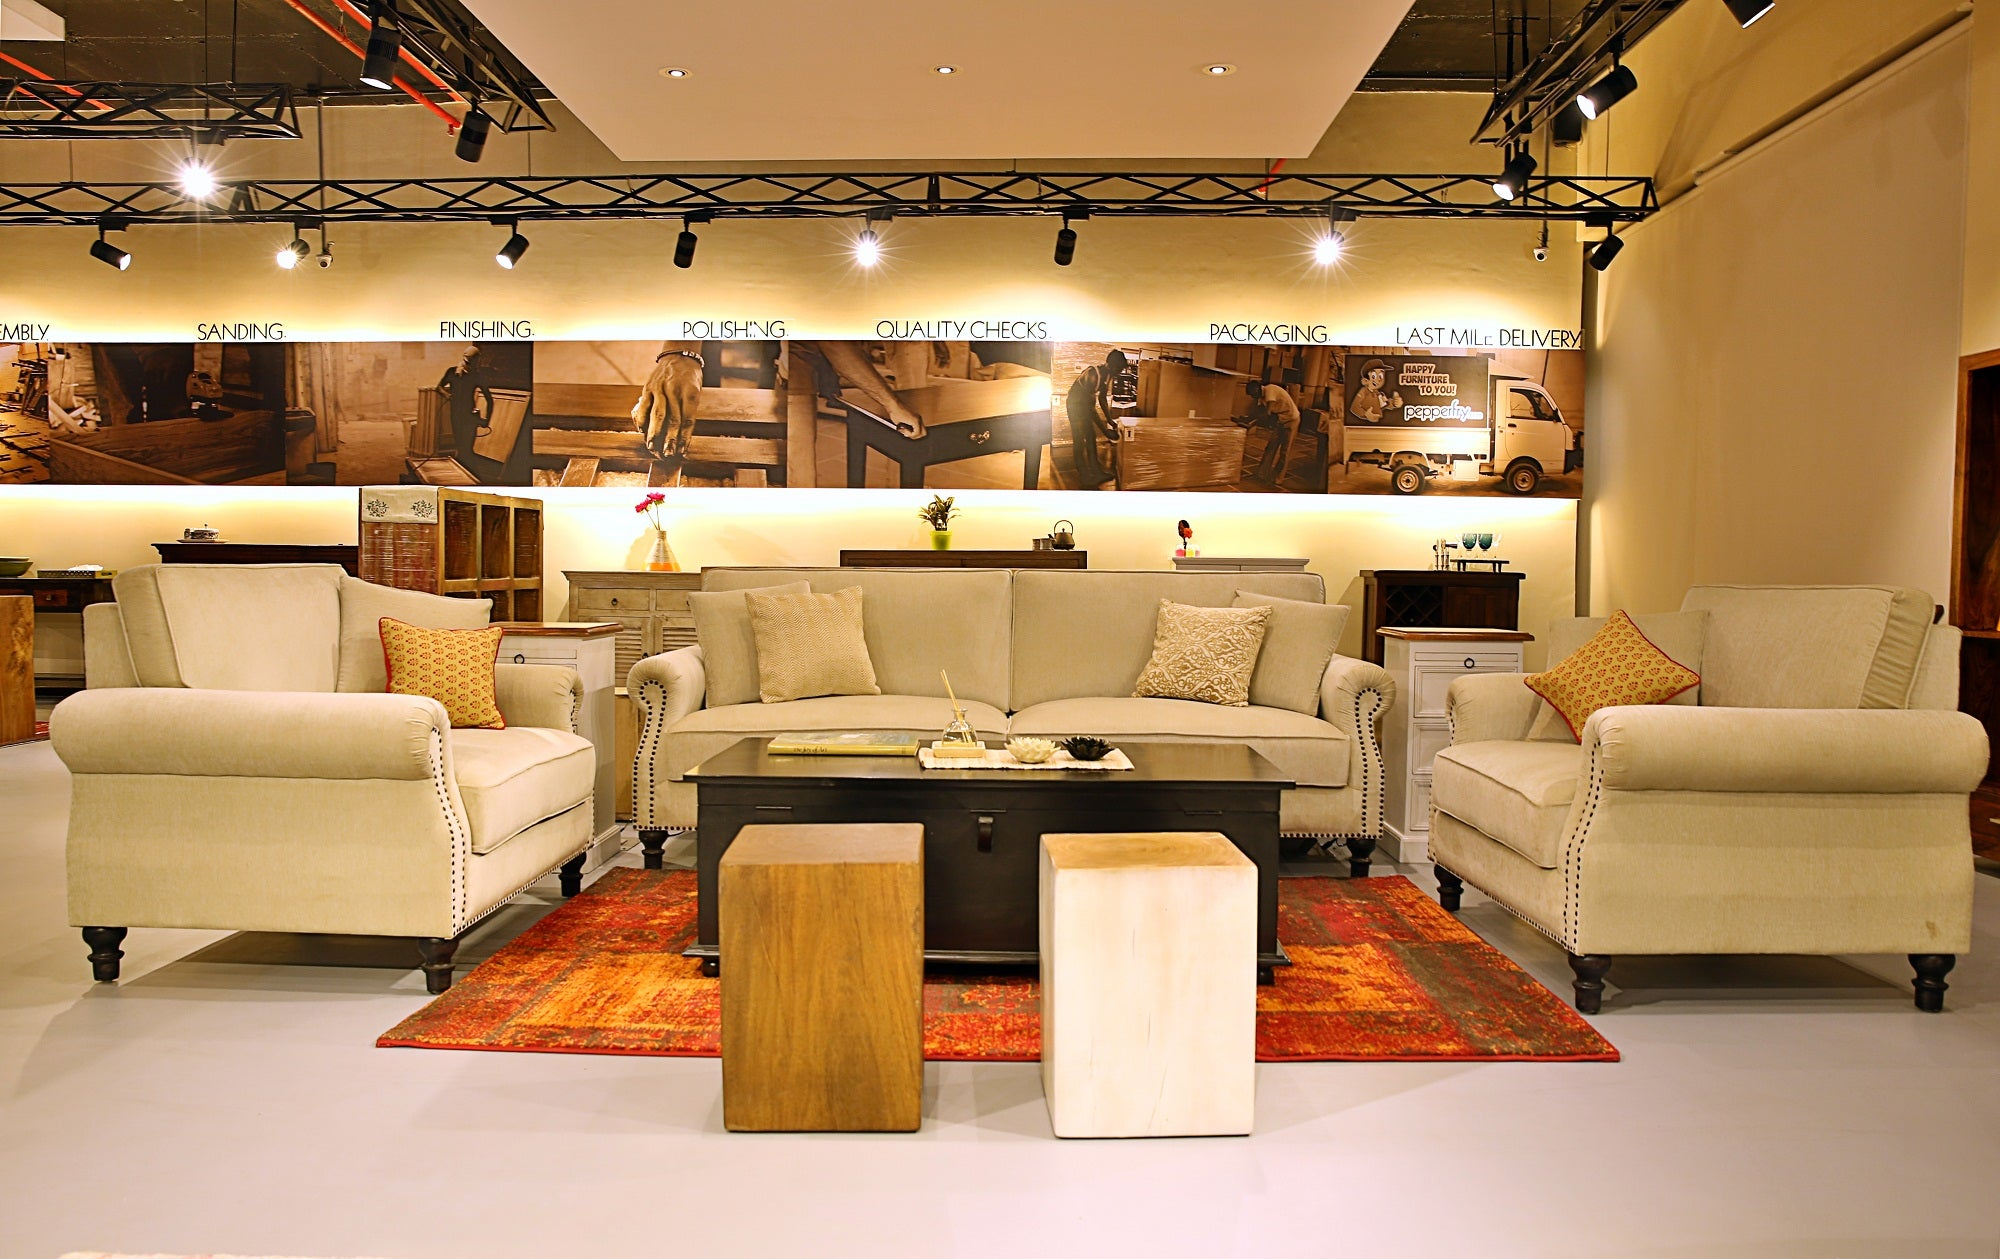 With 100m in latest funding pepperfry plans to quadruple for Home articles furniture